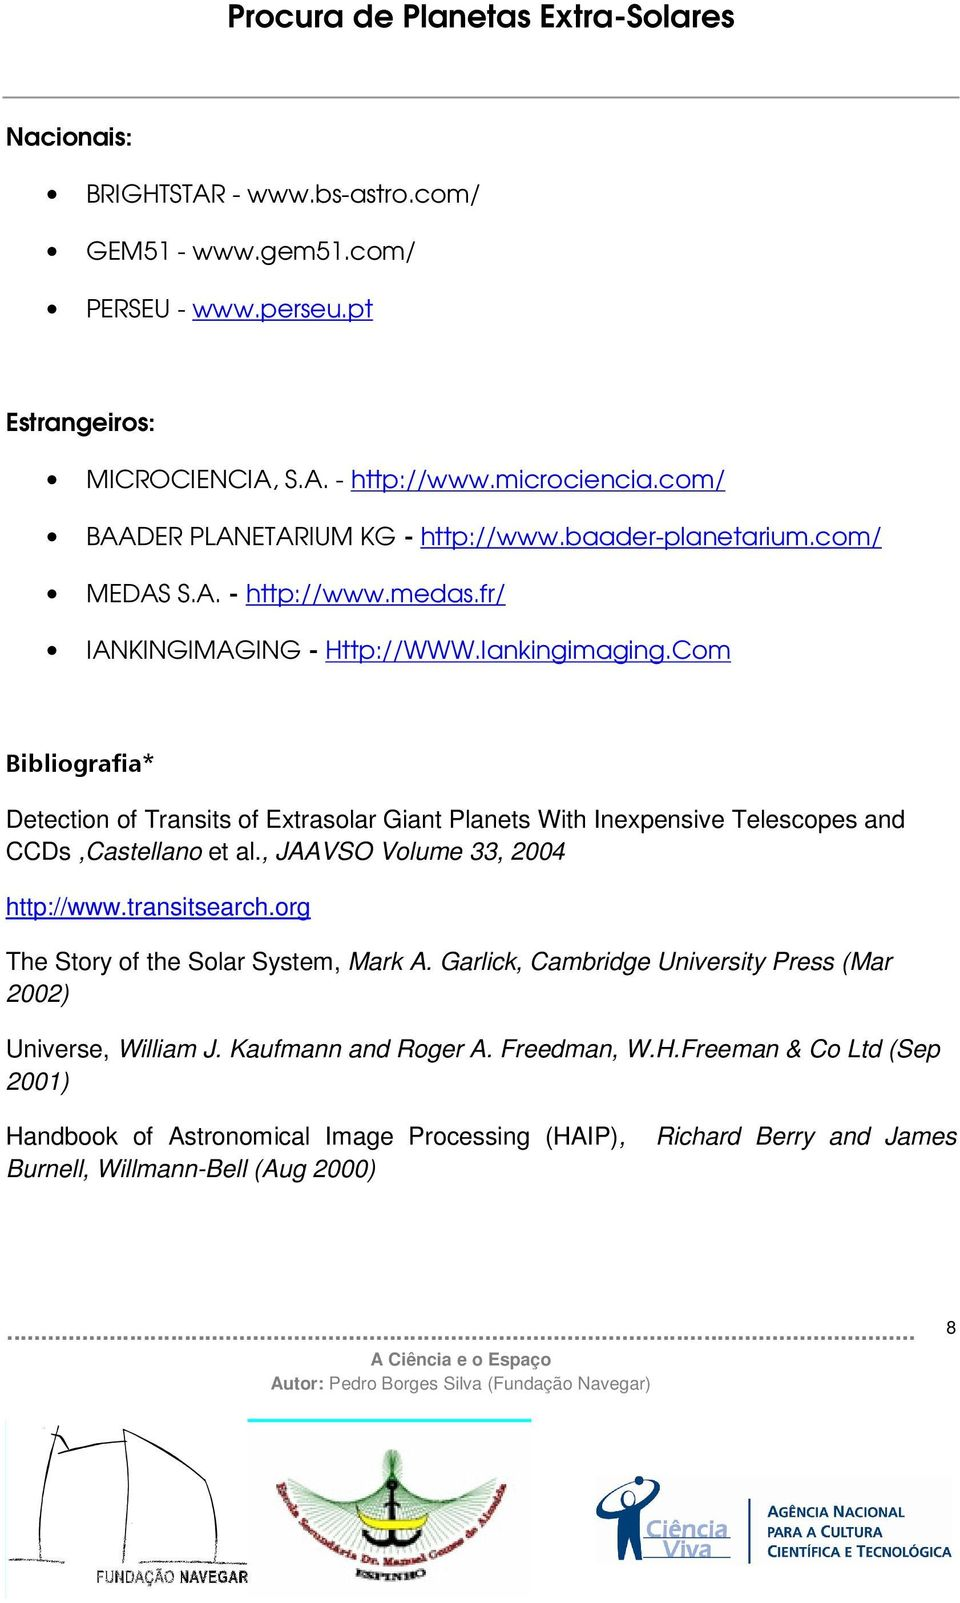 Com Bibliografia* Detection of Transits of Extrasolar Giant Planets With Inexpensive Telescopes and CCDs,Castellano et al., JAAVSO Volume 33, 2004 http://www.transitsearch.